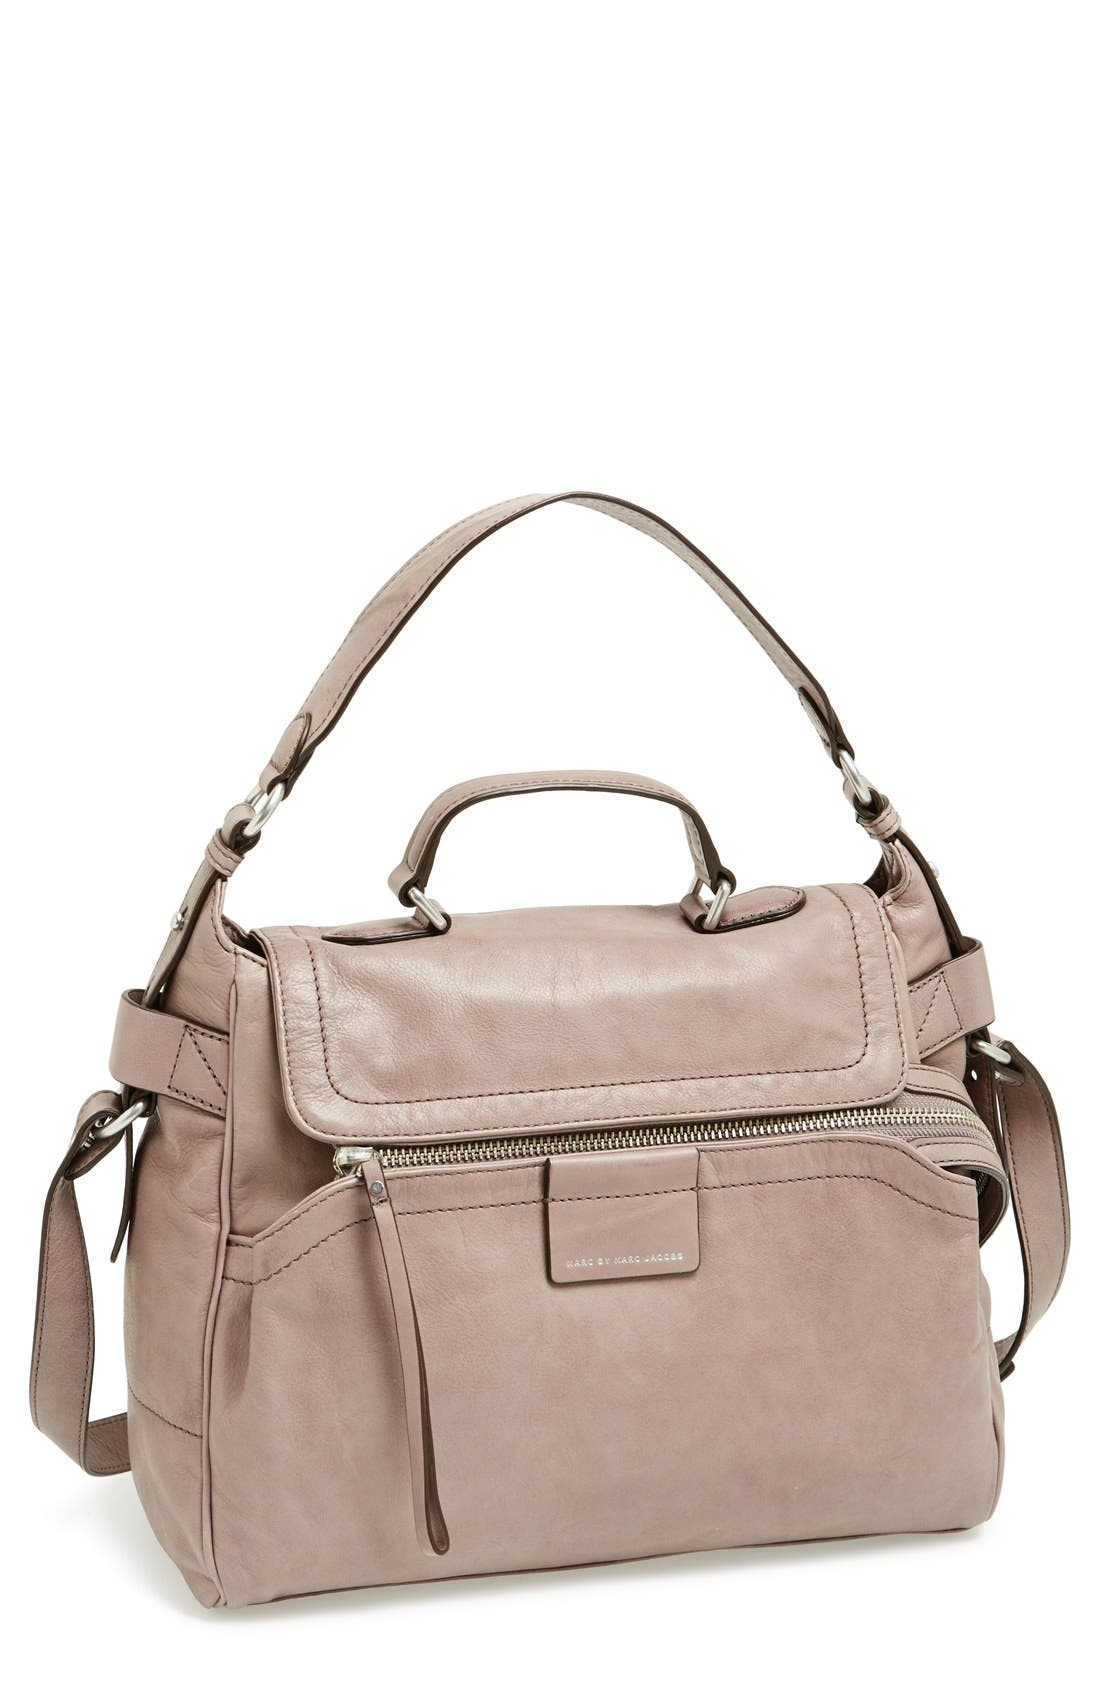 Main Image - MARC BY MARC JACOBS Moto Satchel